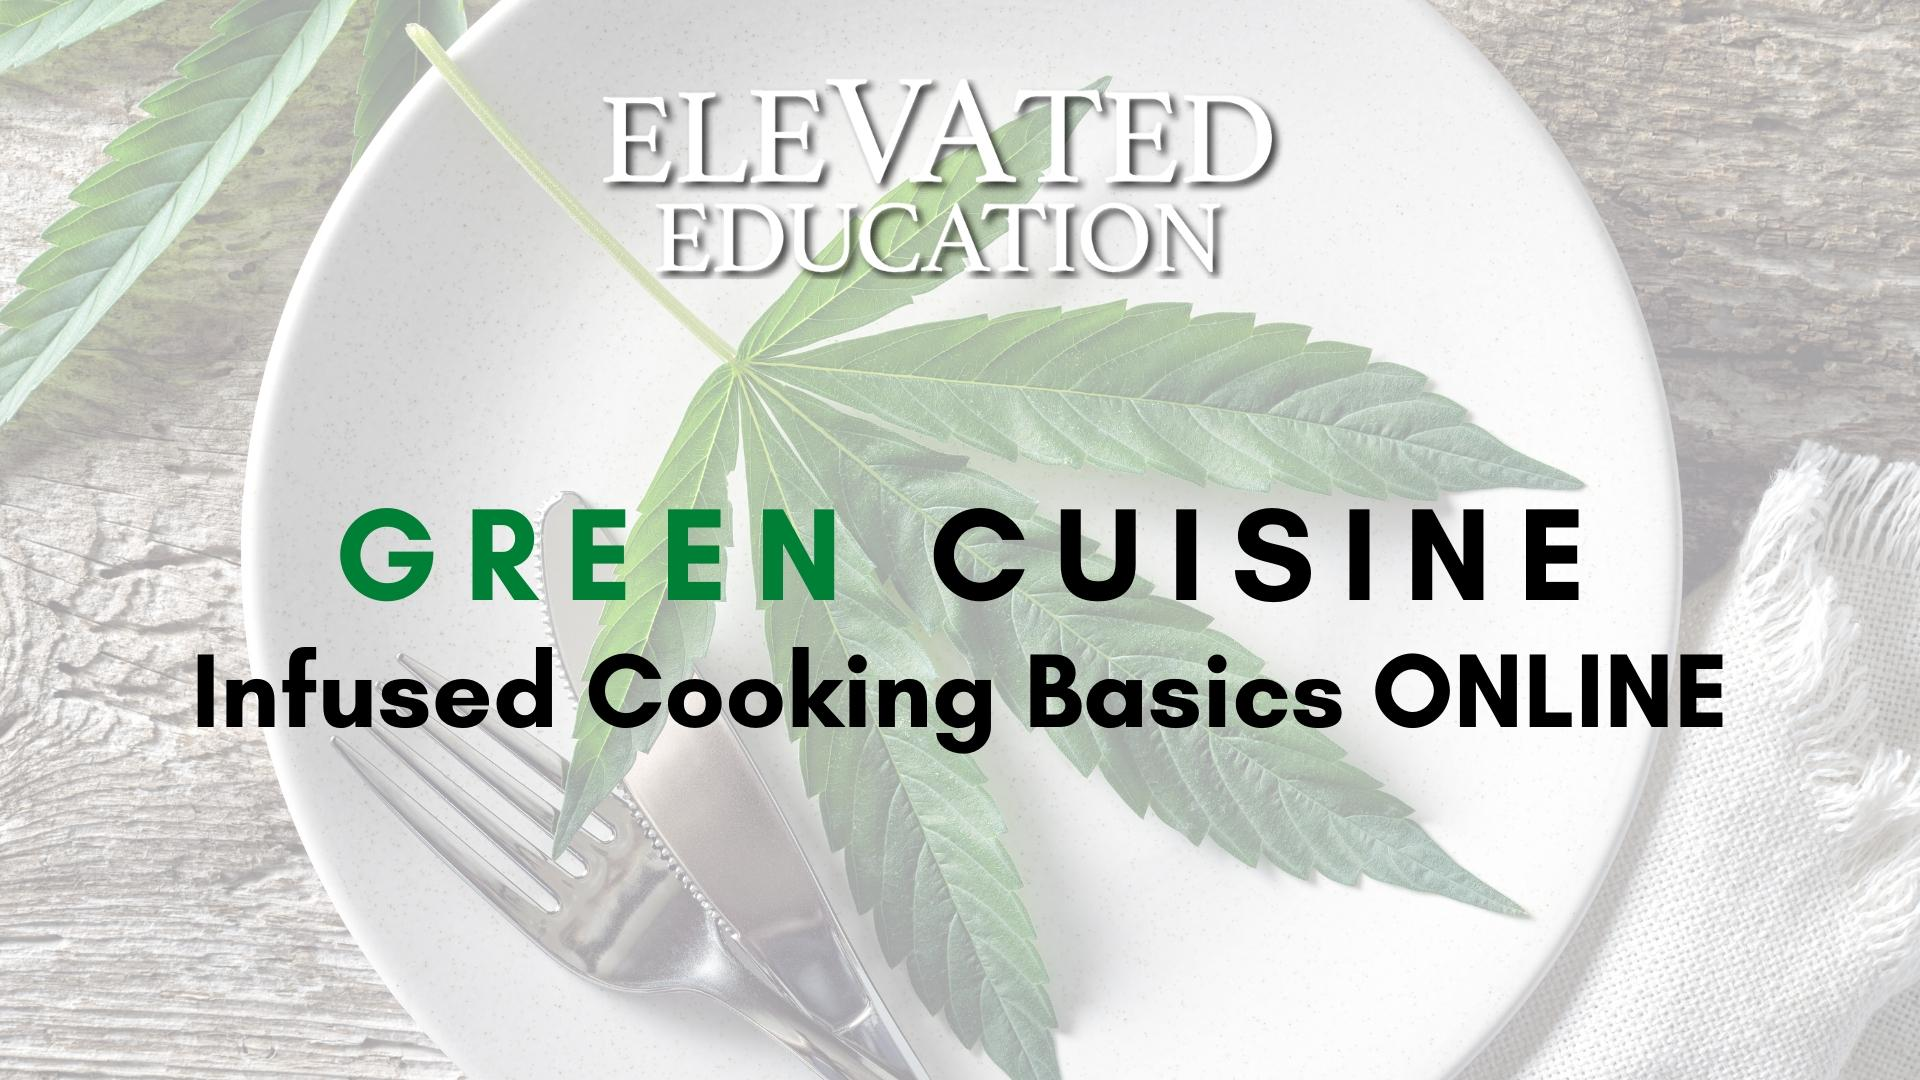 Green Cuisine Infused Cooking  Basics--ONLINE (Elevated Education)